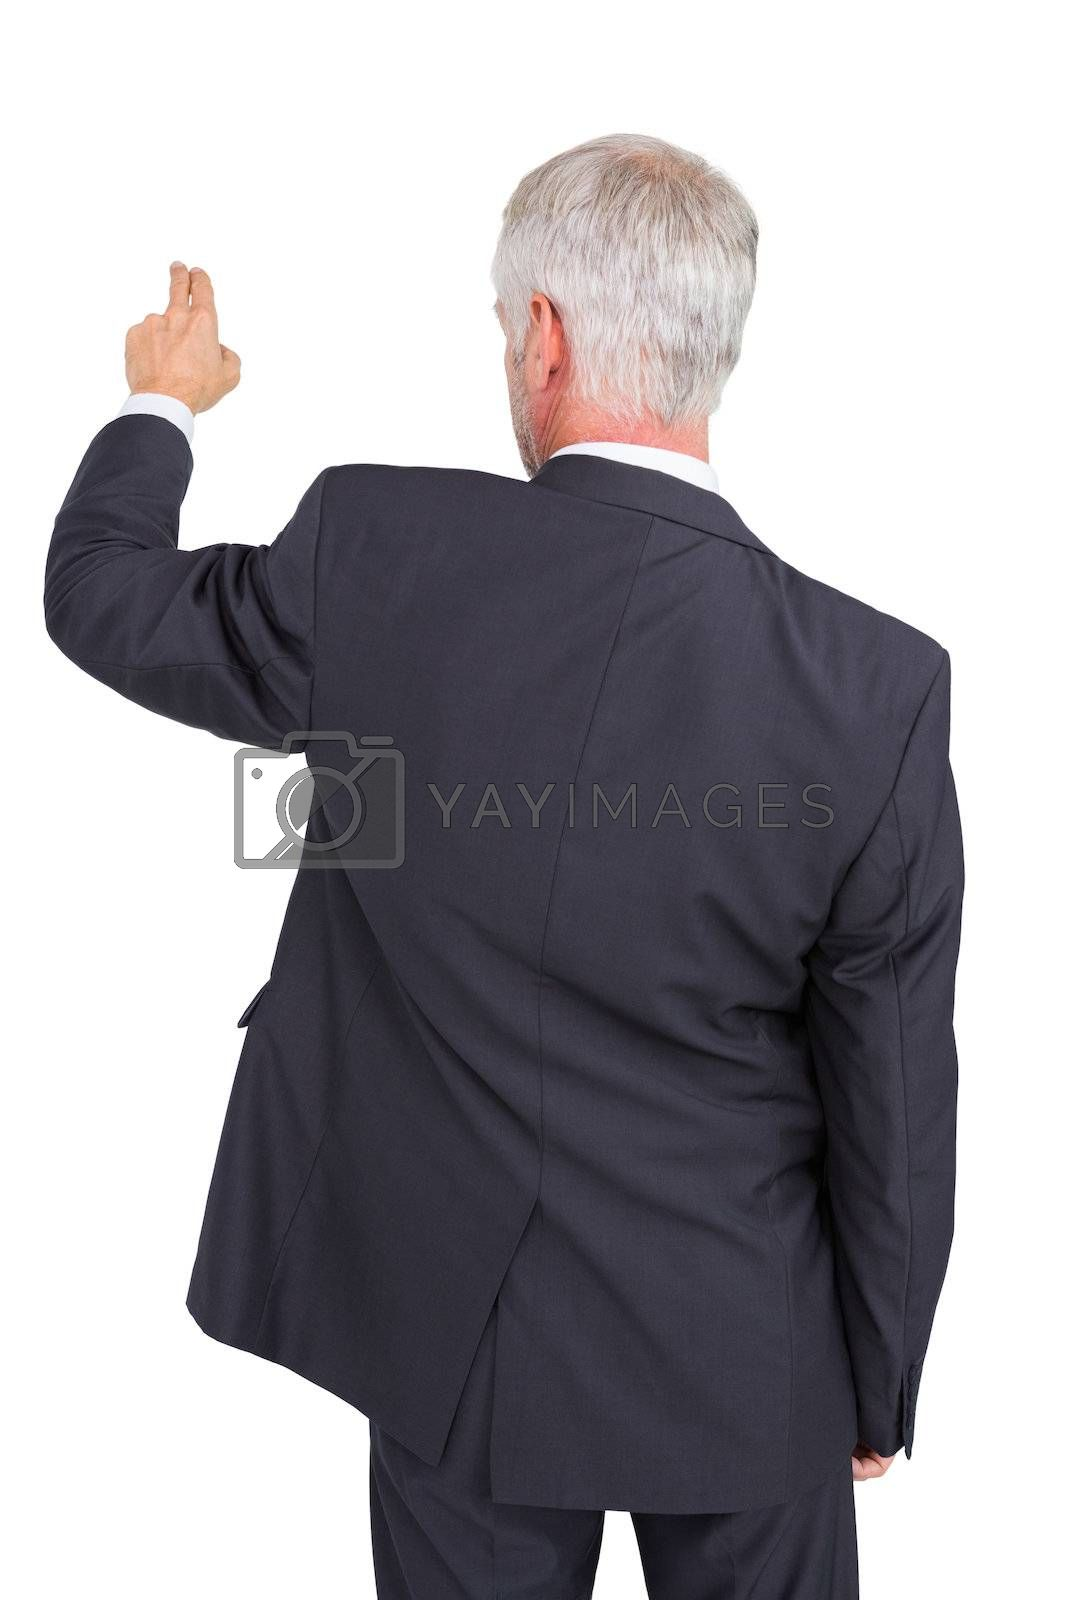 Rear view of stylish mature businessman pointing finger by Wavebreakmedia